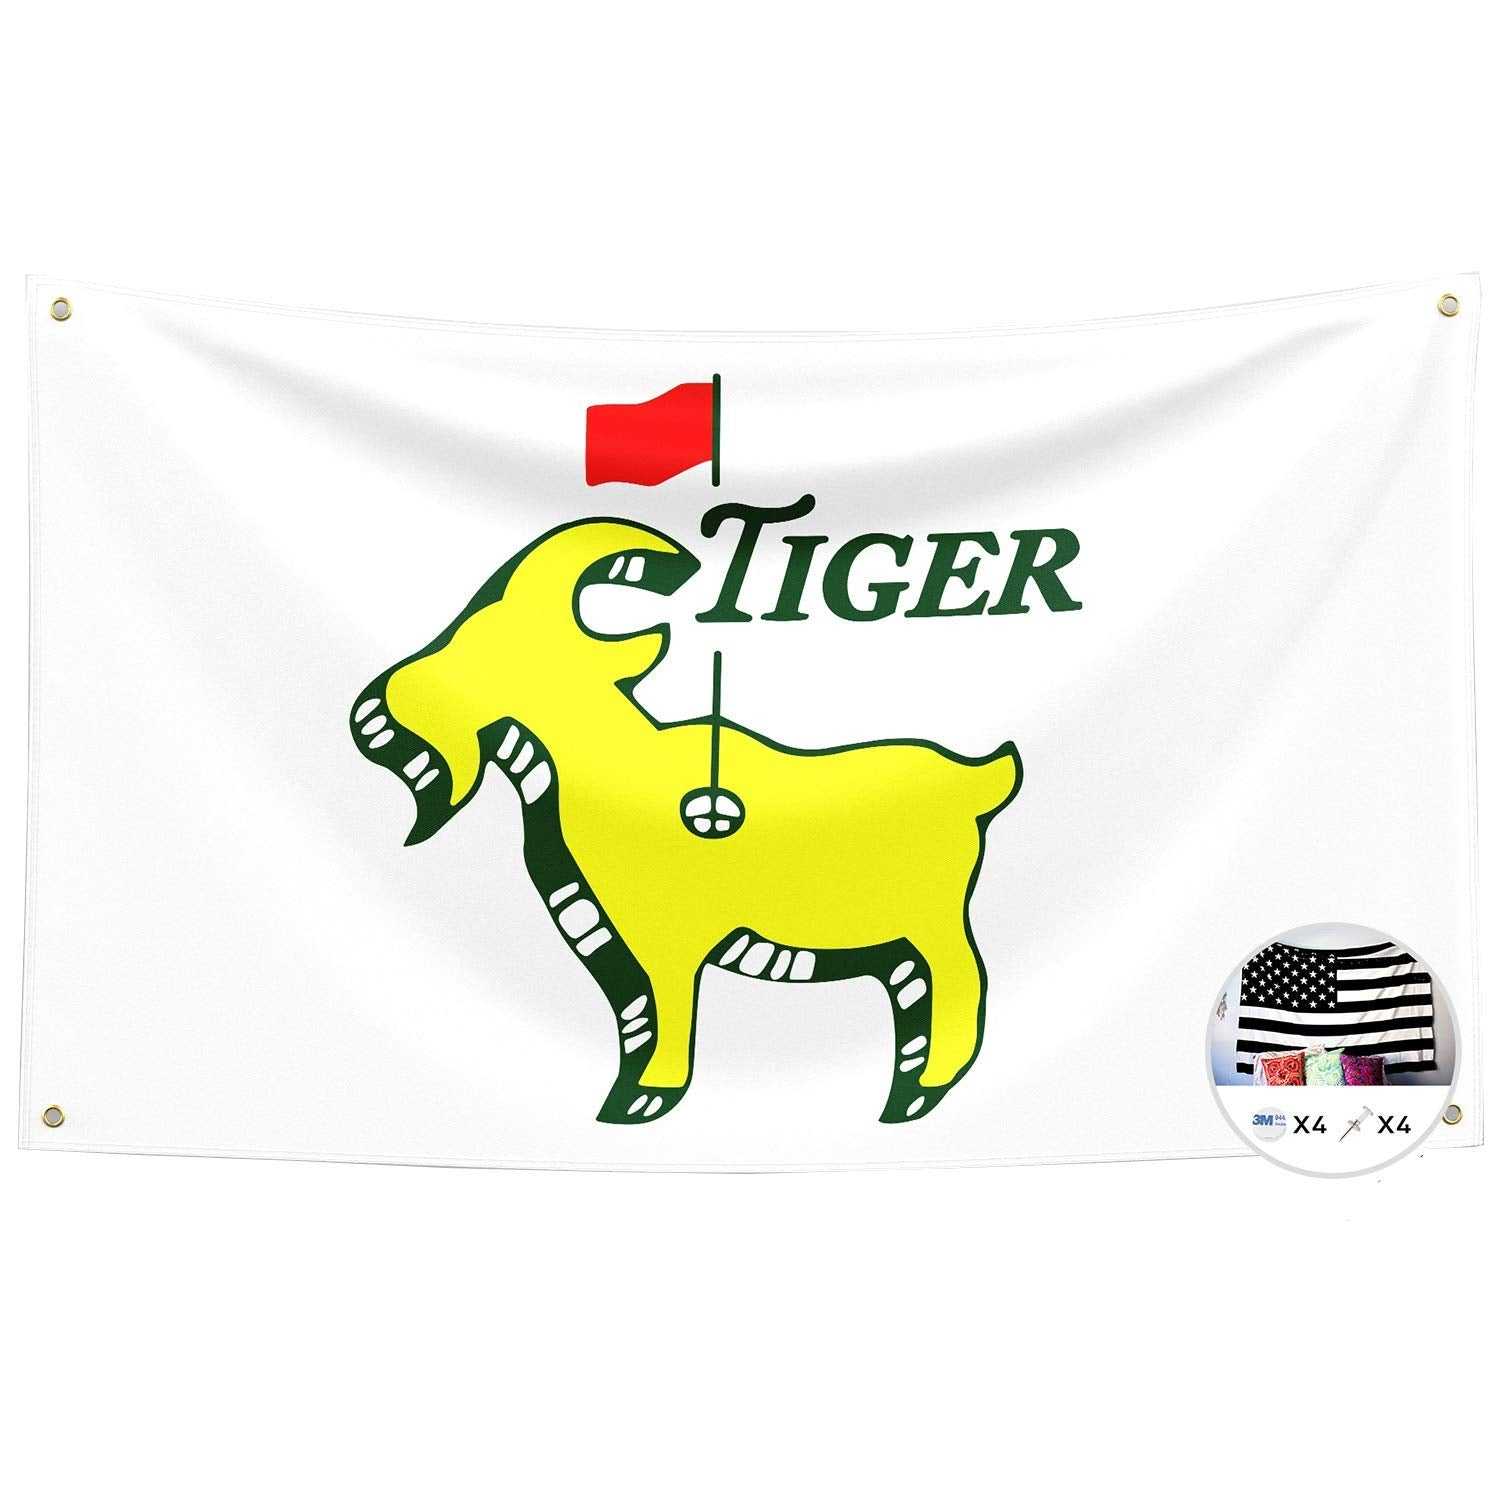 Probsin Tiger Woods Goat Golf Flag,3x5 Feet Banner,Funny Poster UV Resistance Fading & Durable Man Cave Wall Flag with Brass Grommets for College Dorm Room Decor,Outdoor,Parties,Gift,Tailgates